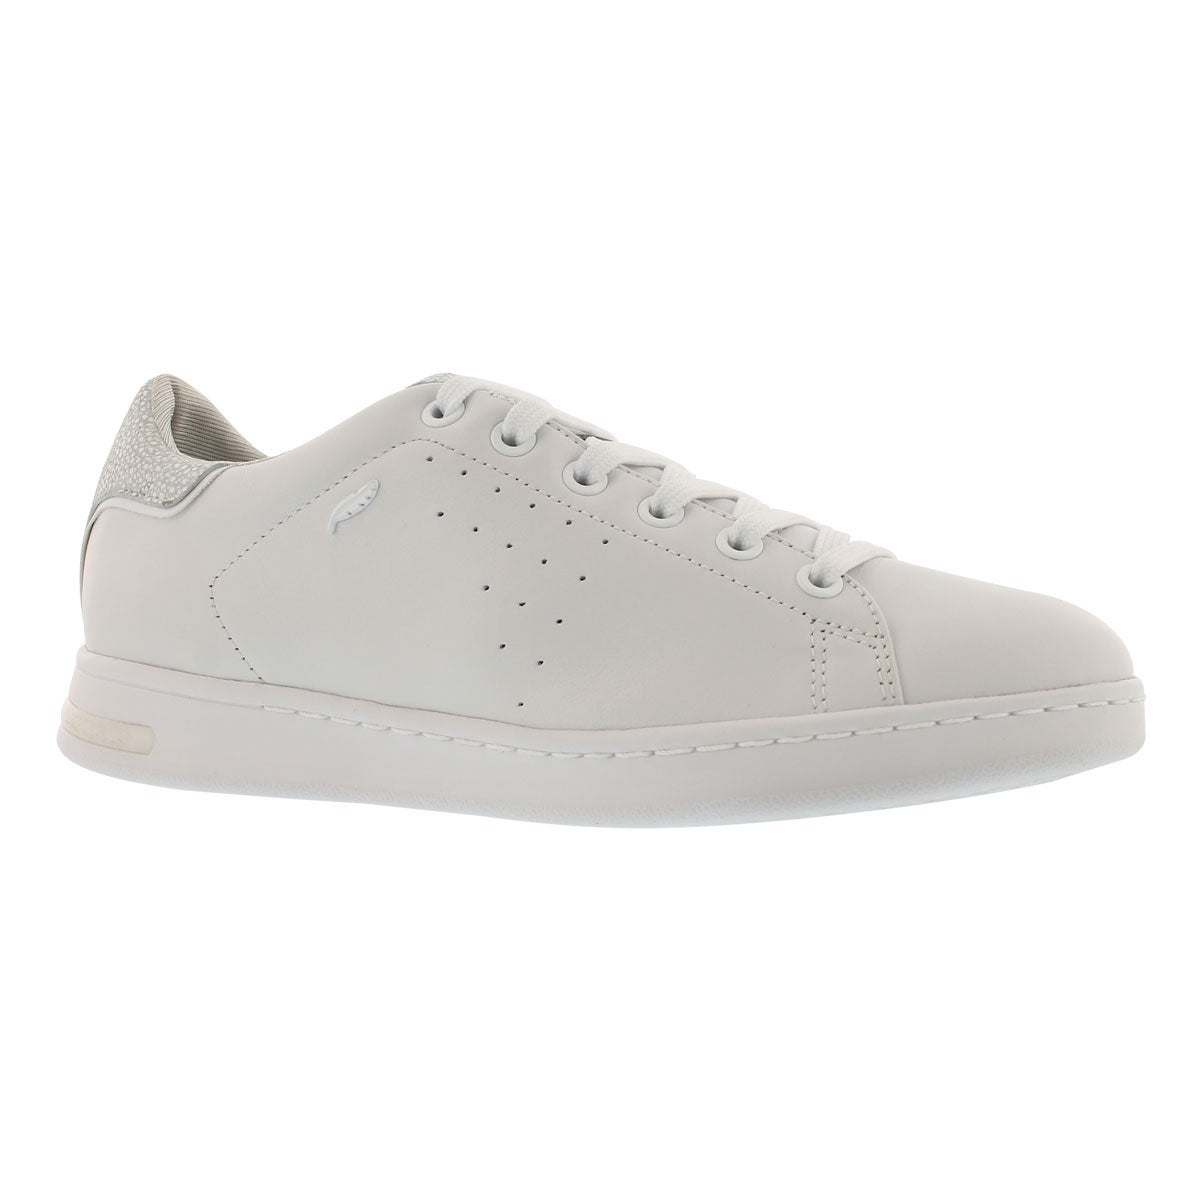 Lds Jaysen white lace up sneaker